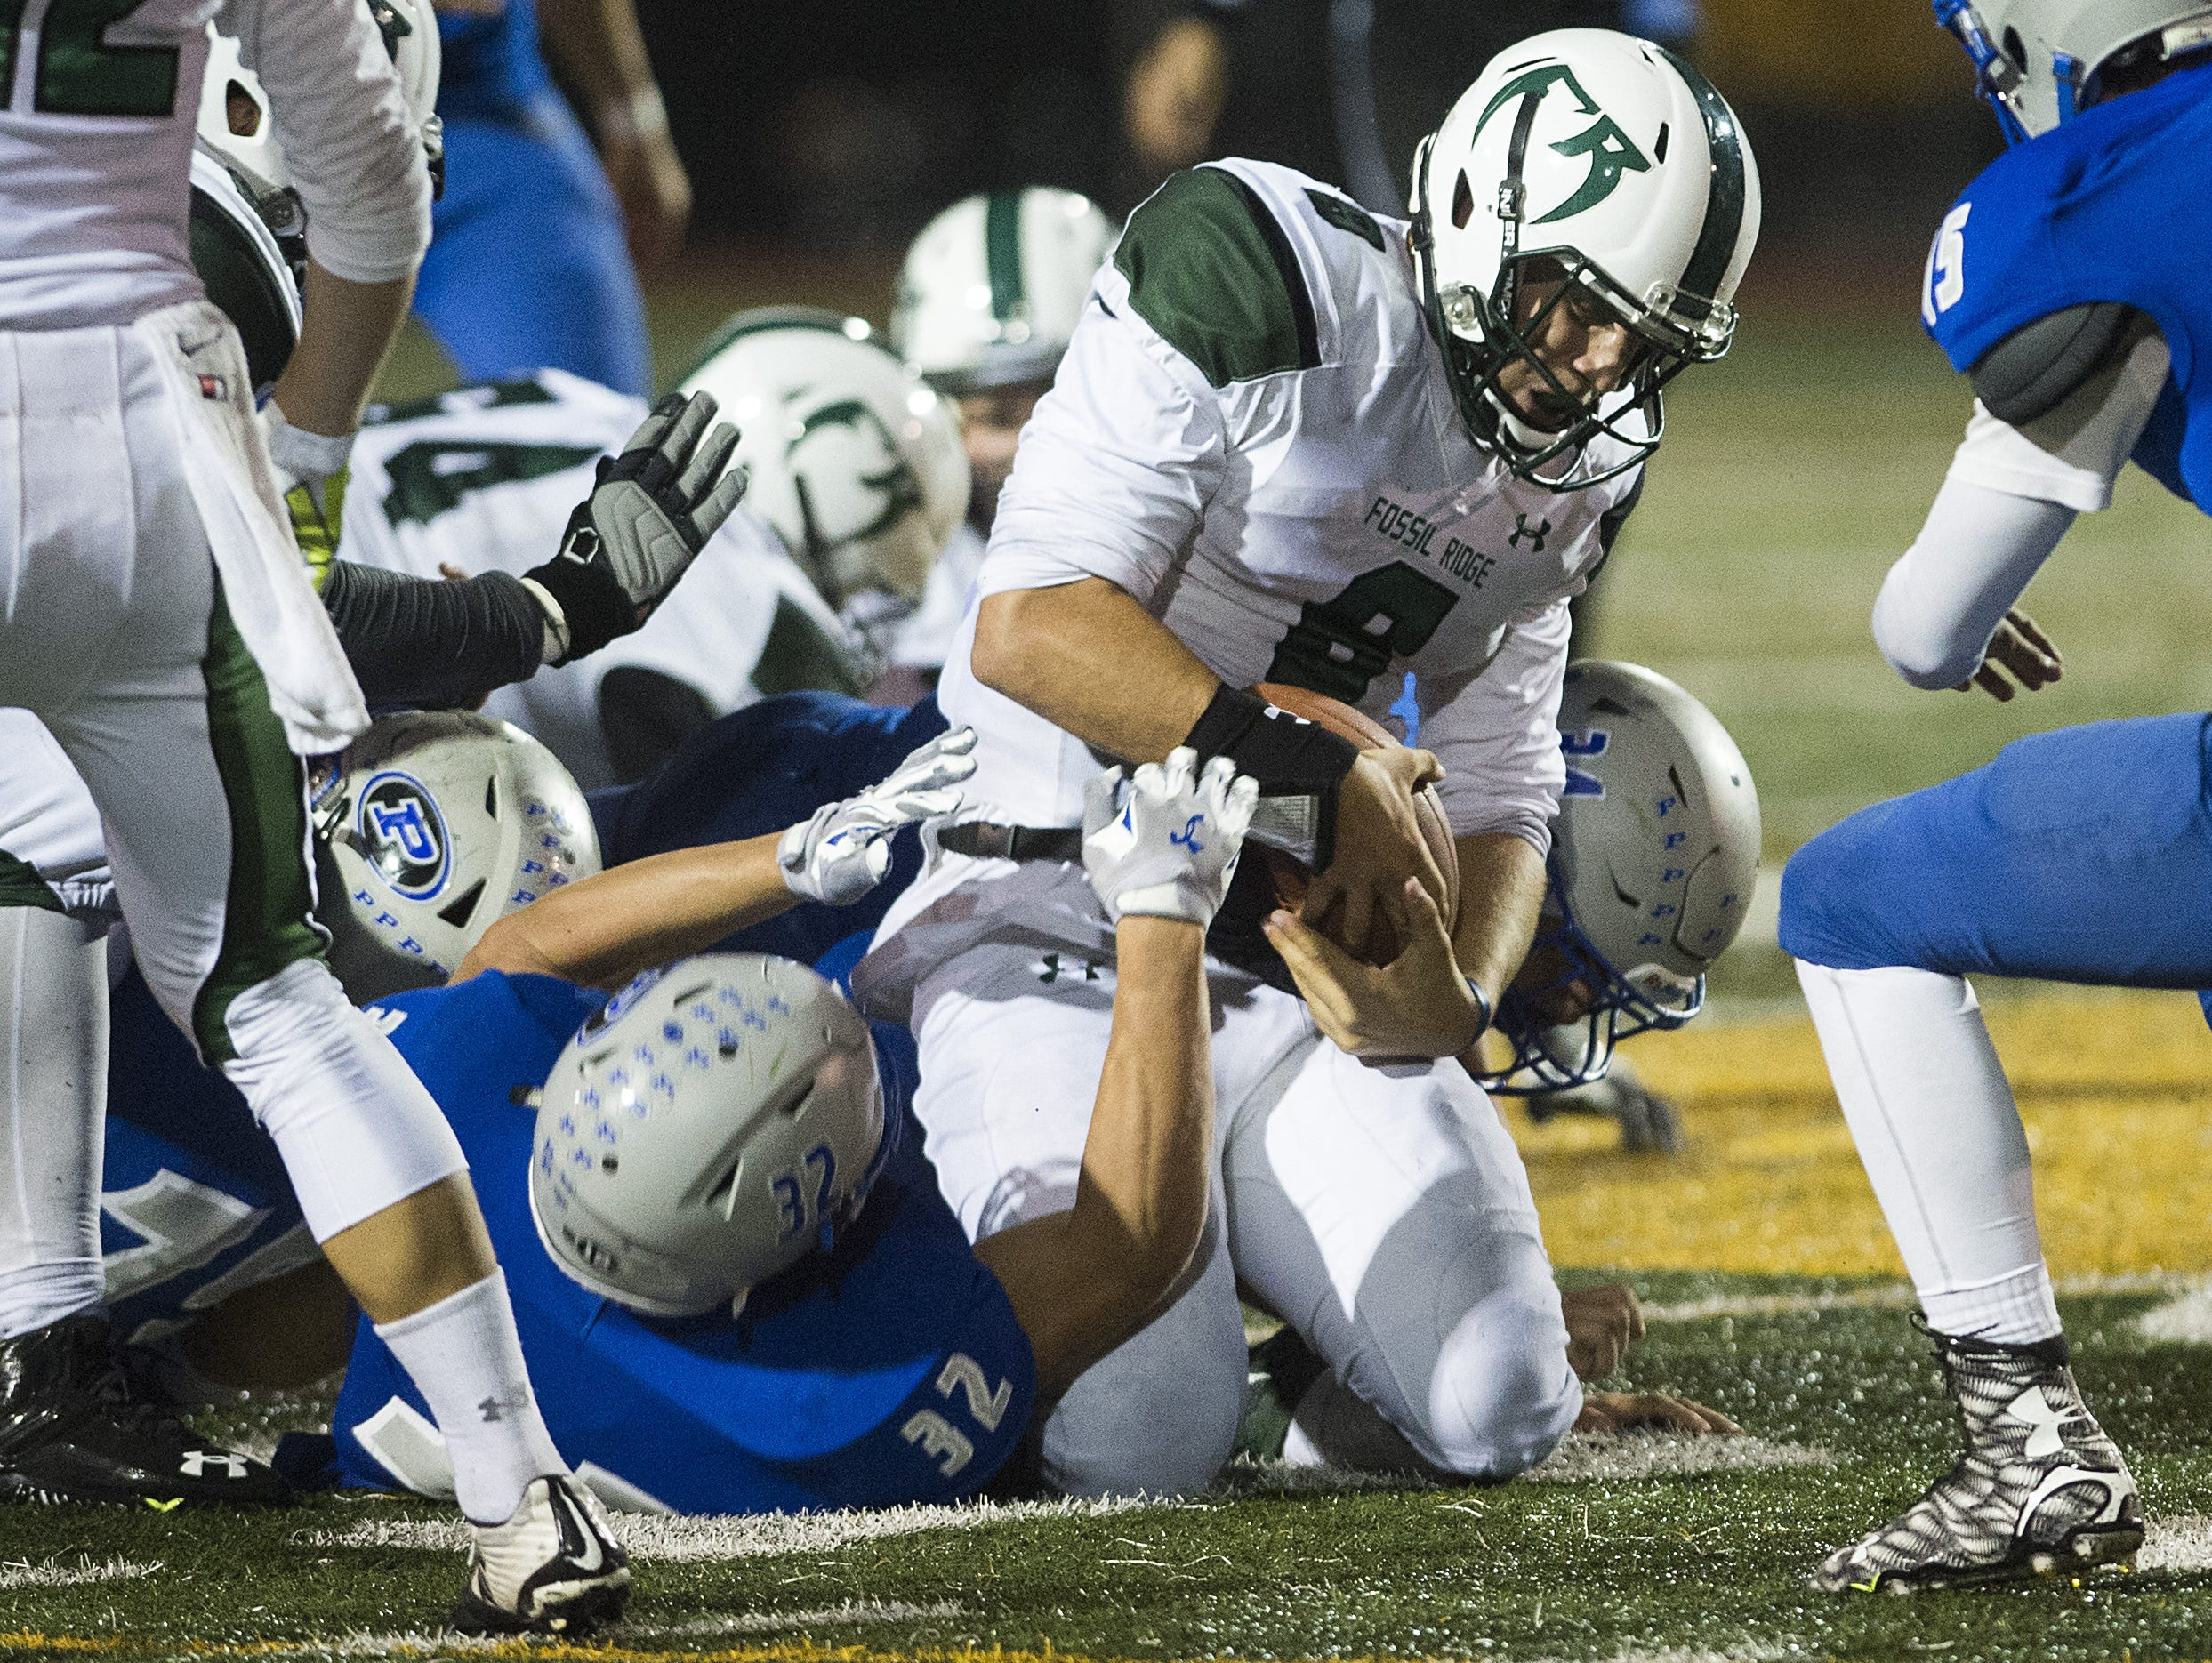 Friday's 7 p.m. Poudre vs. Fossil Ridge football game will be streamed live at Coloradoan.com.